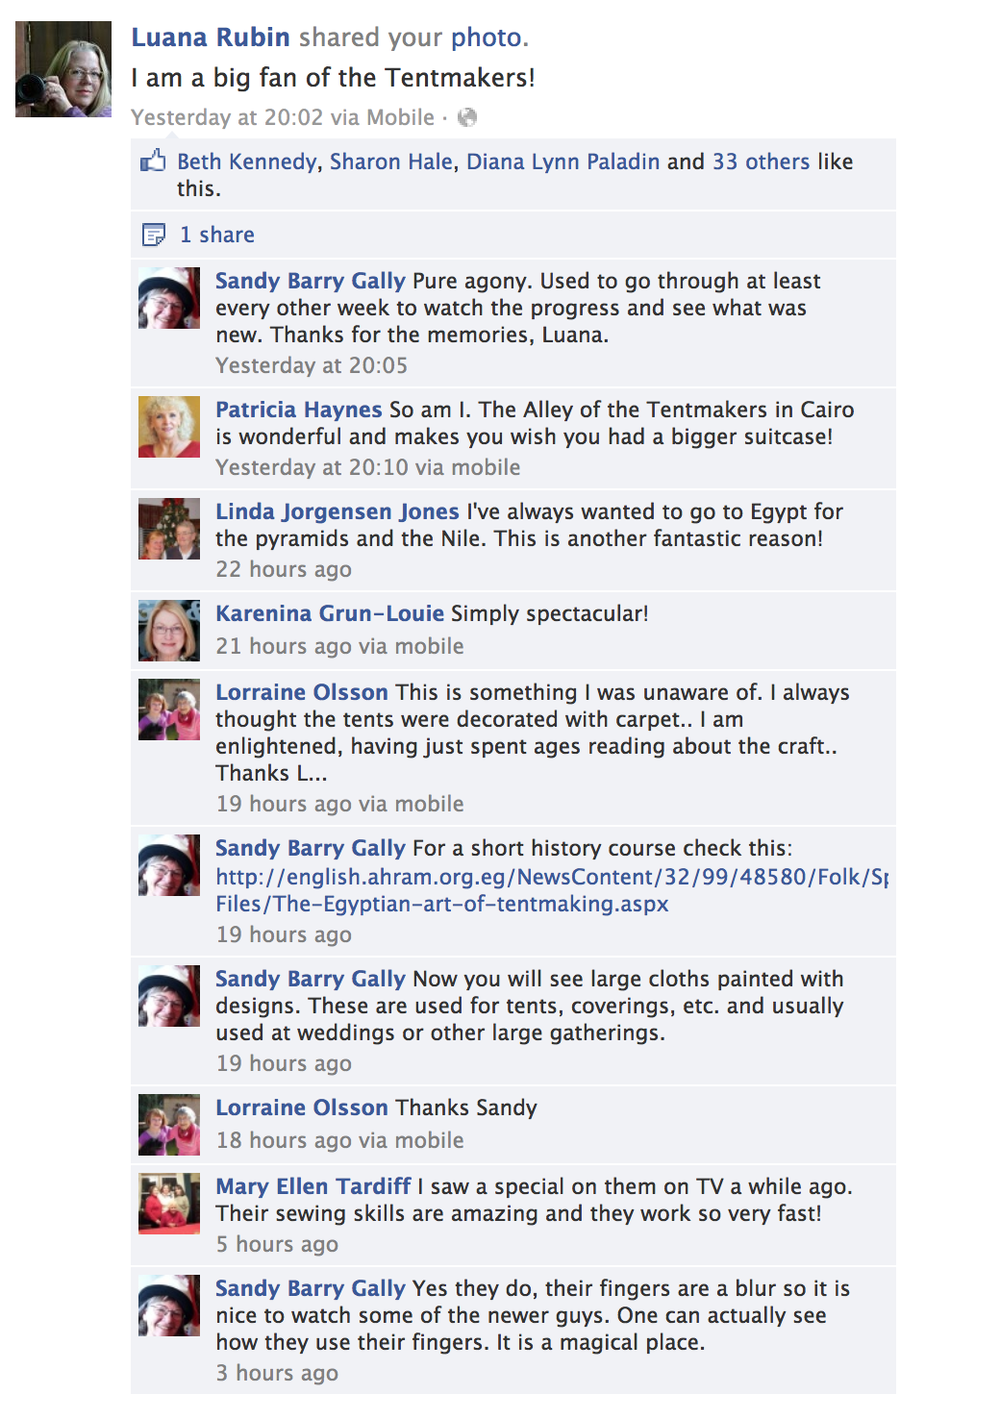 Reactions to Luana Rubin sharing a photo from the Facebook Page The Tentmakers of Chareh El Khiamiah - 18 January 2013